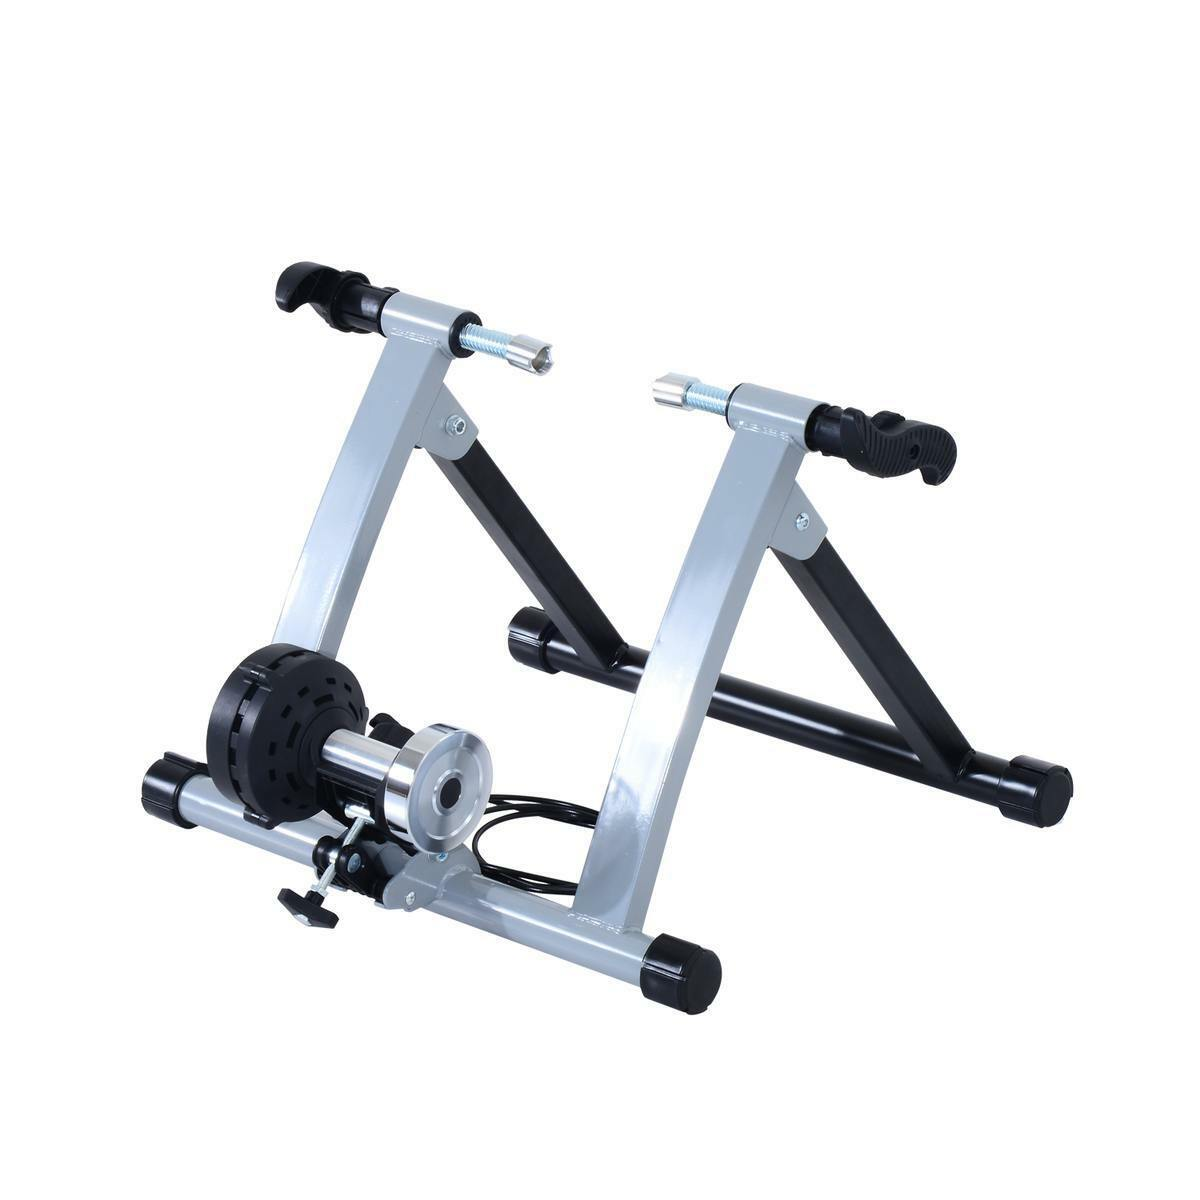 MAGNETIC TURBO TRAINER HOME TRAINER CYCLE TRAINER VARIABLE SPEED WITH REMOTE CO